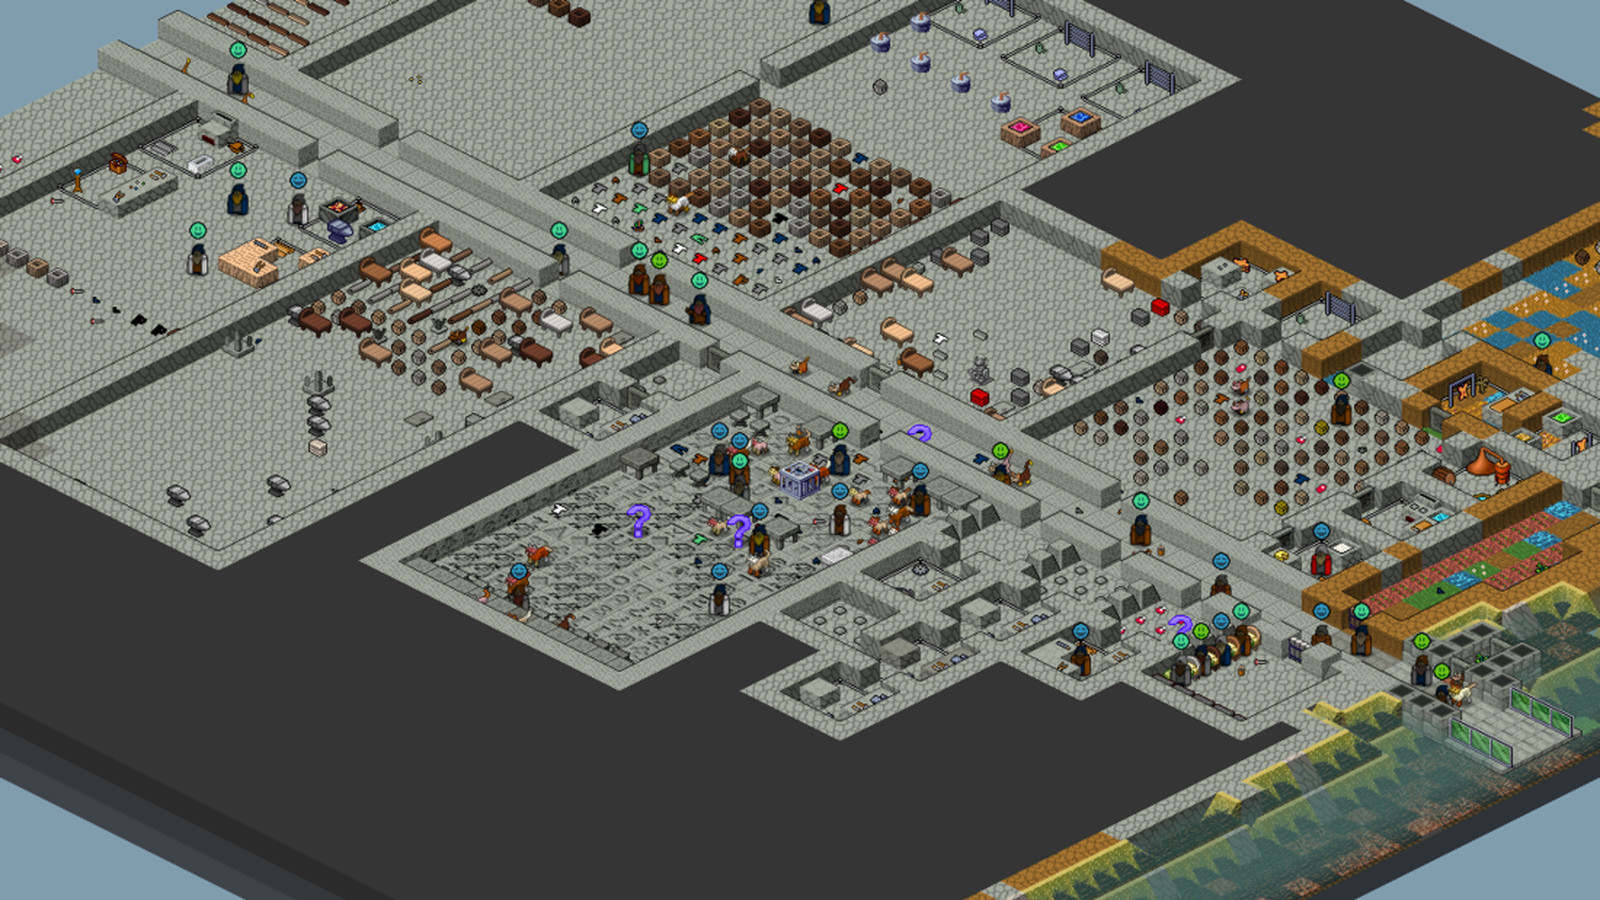 Dwarf Fortress mods turn ASCII text into realtime 3D